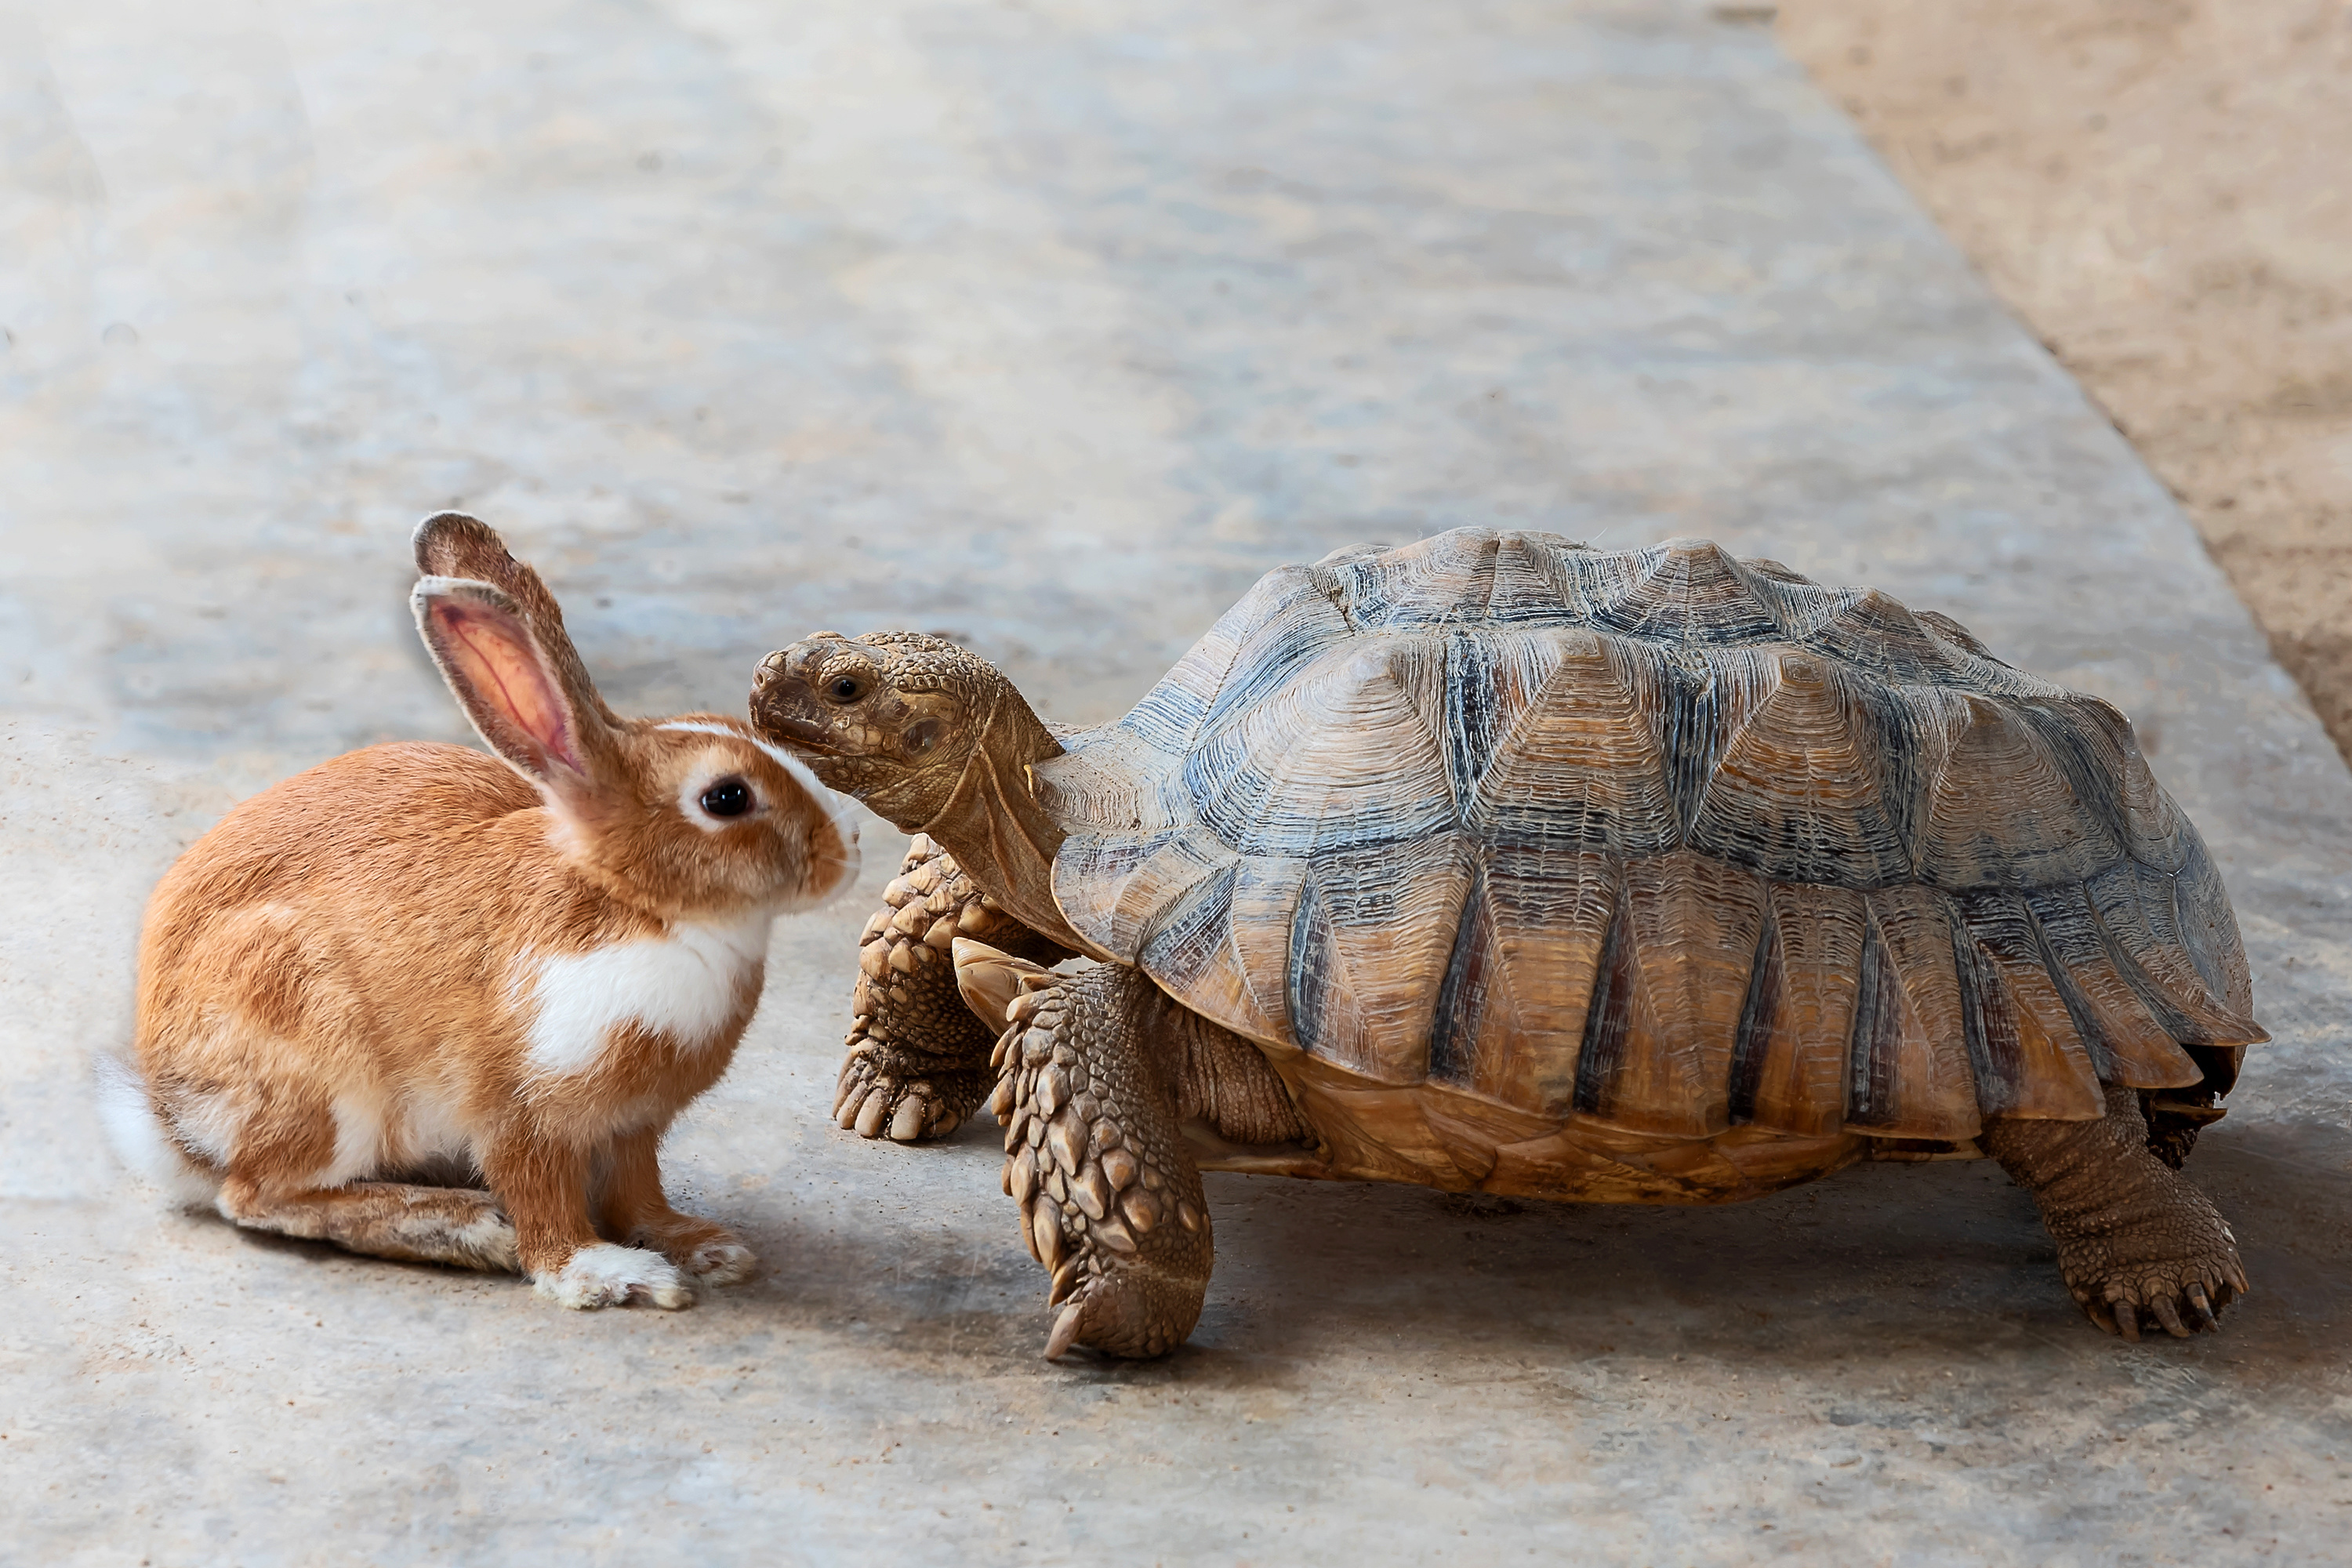 A tortoise and hare look at one another.